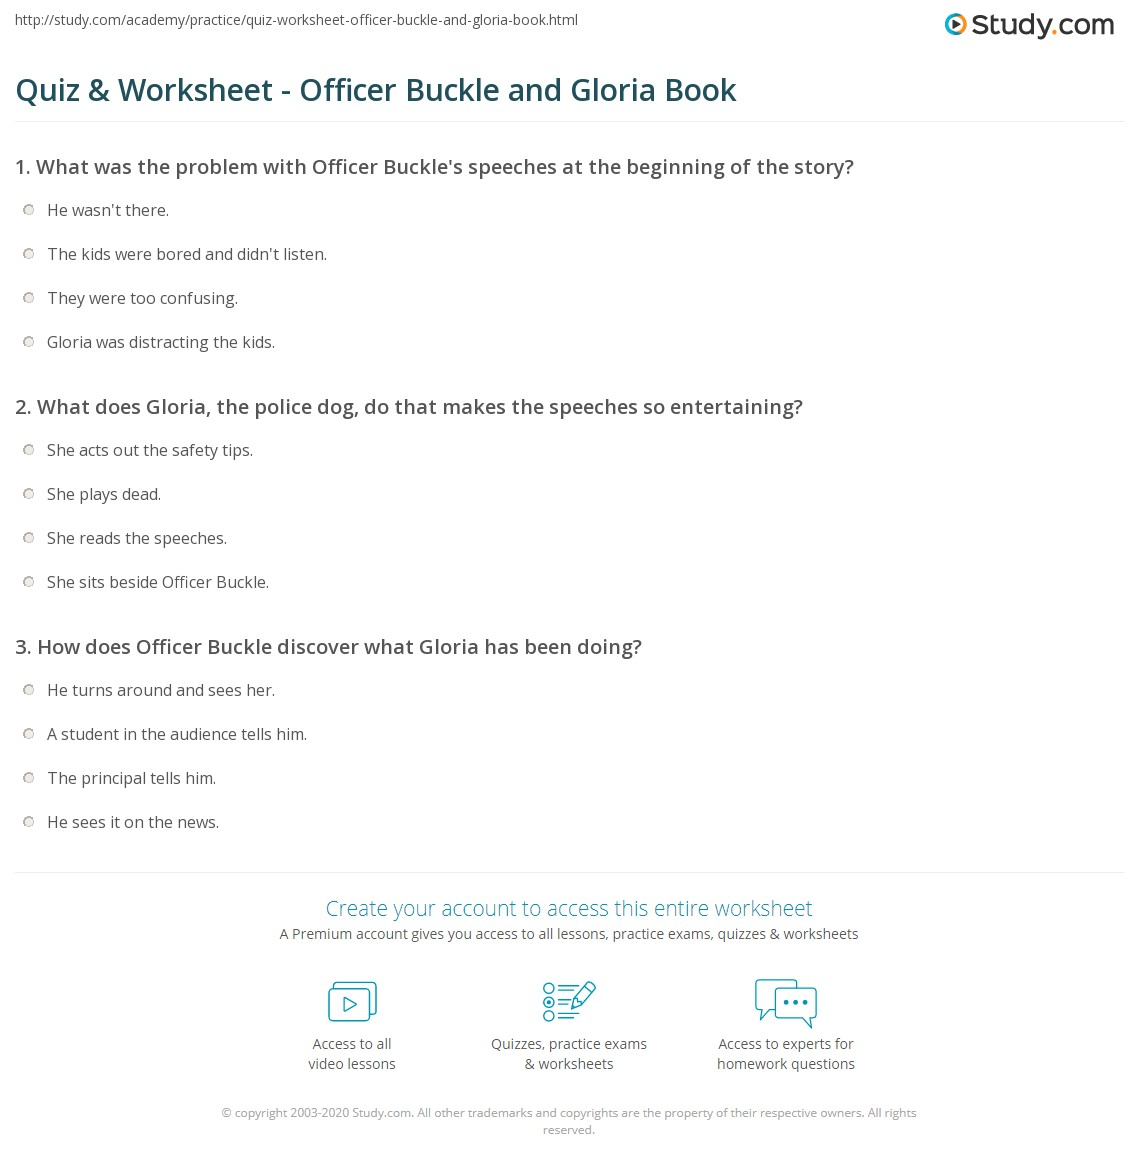 Worksheets Officer Buckle And Gloria Worksheets quiz worksheet officer buckle and gloria book study com print summary vocabulary worksheet